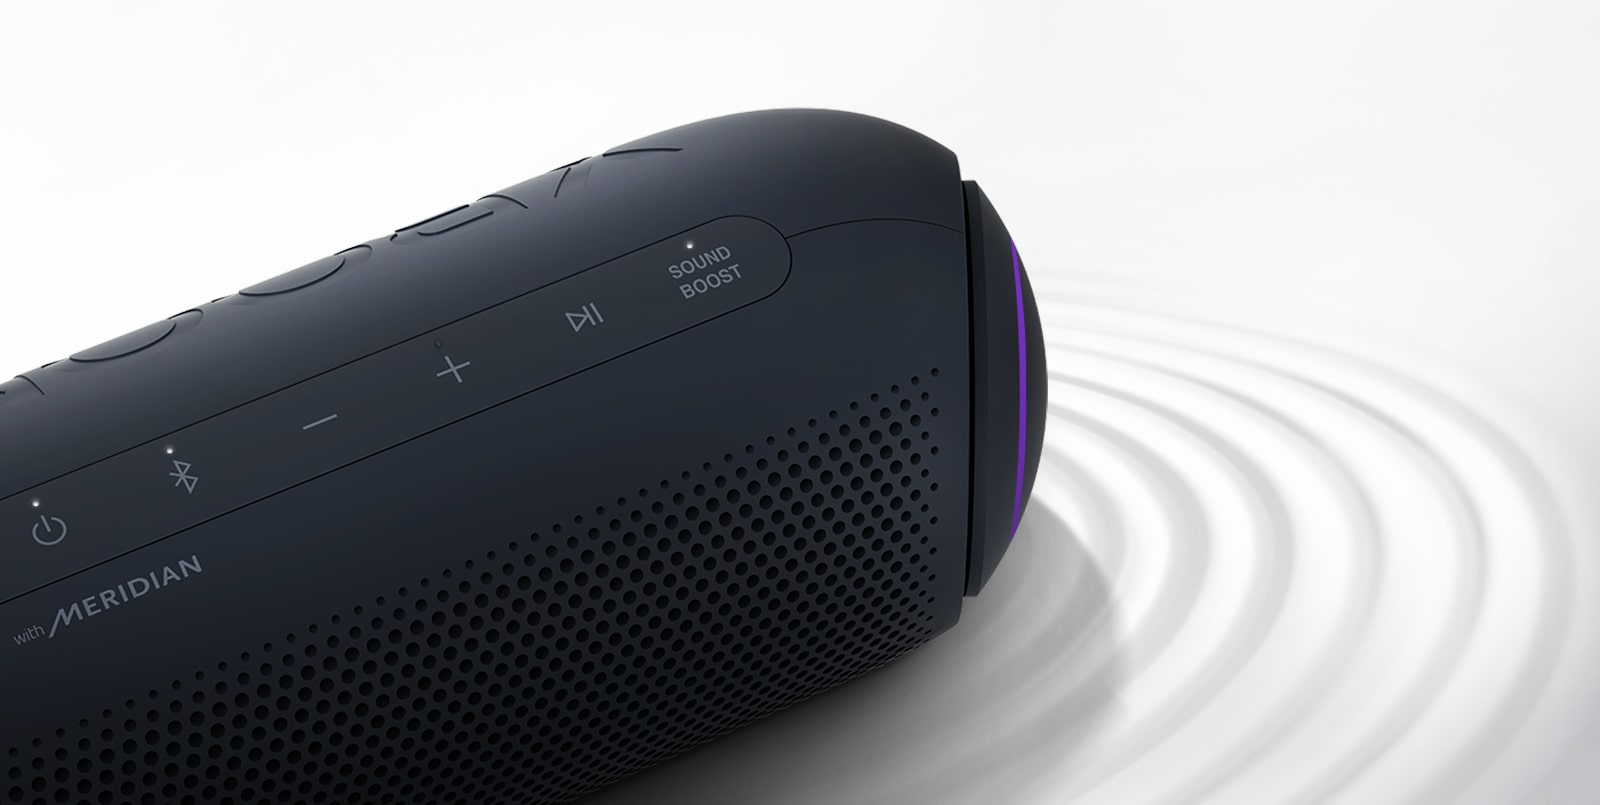 On a white background, LG XBOOM Go faces the upper right with purple lighting, there is a ripple effect under the product.